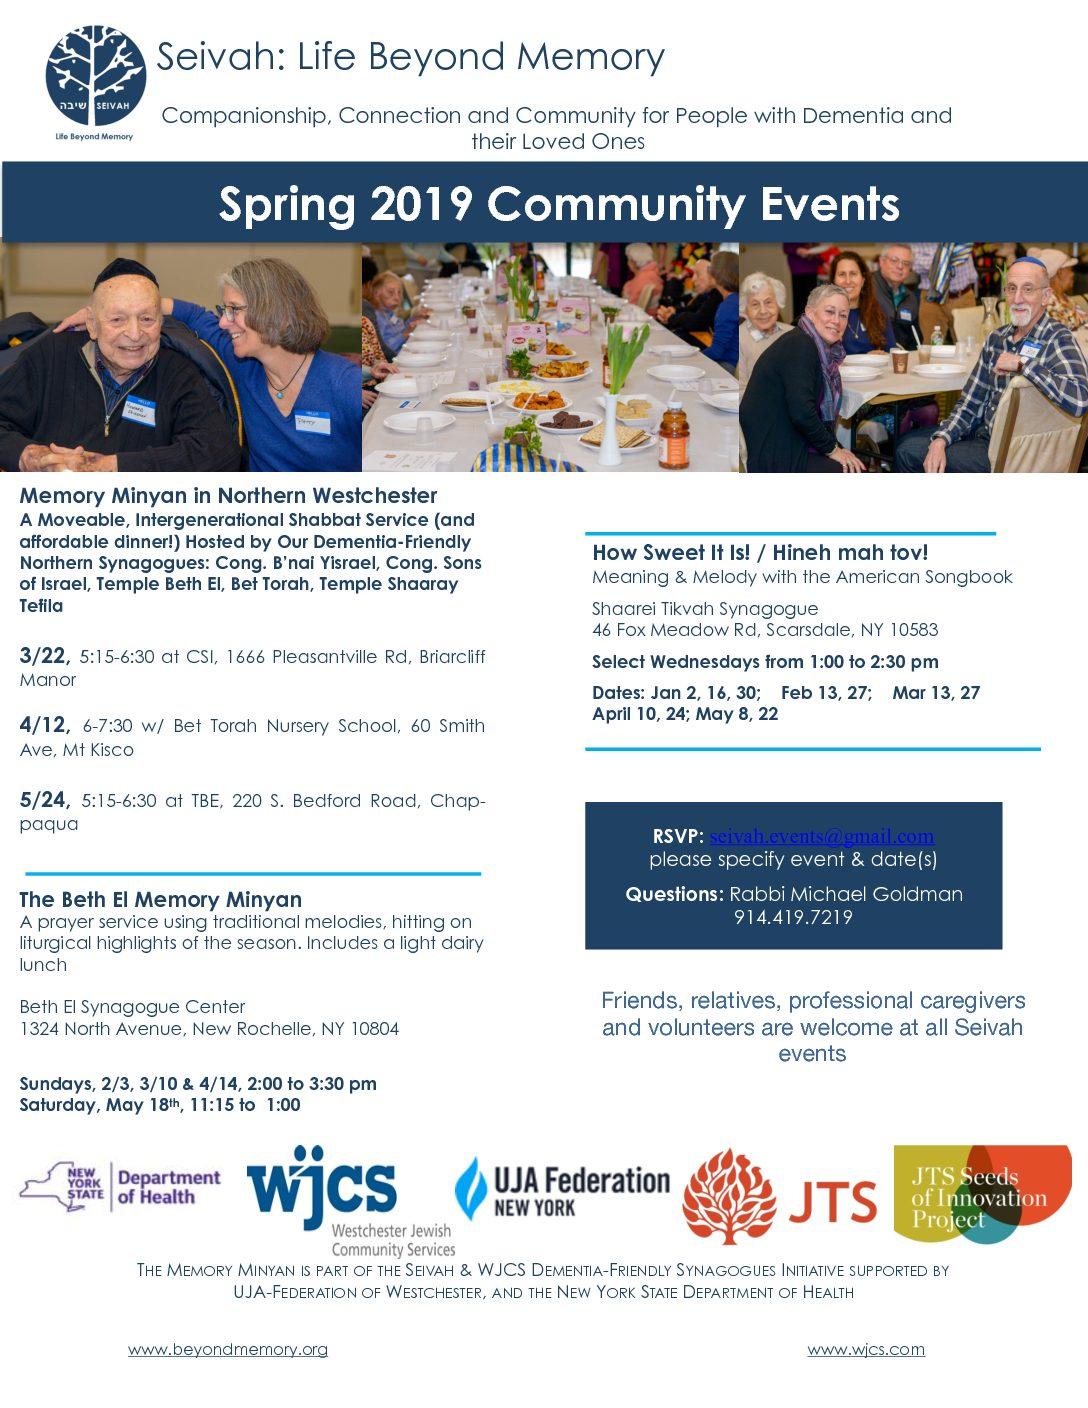 Discover Our Spring Programs! Join the Passover Memory Minyan on April 14